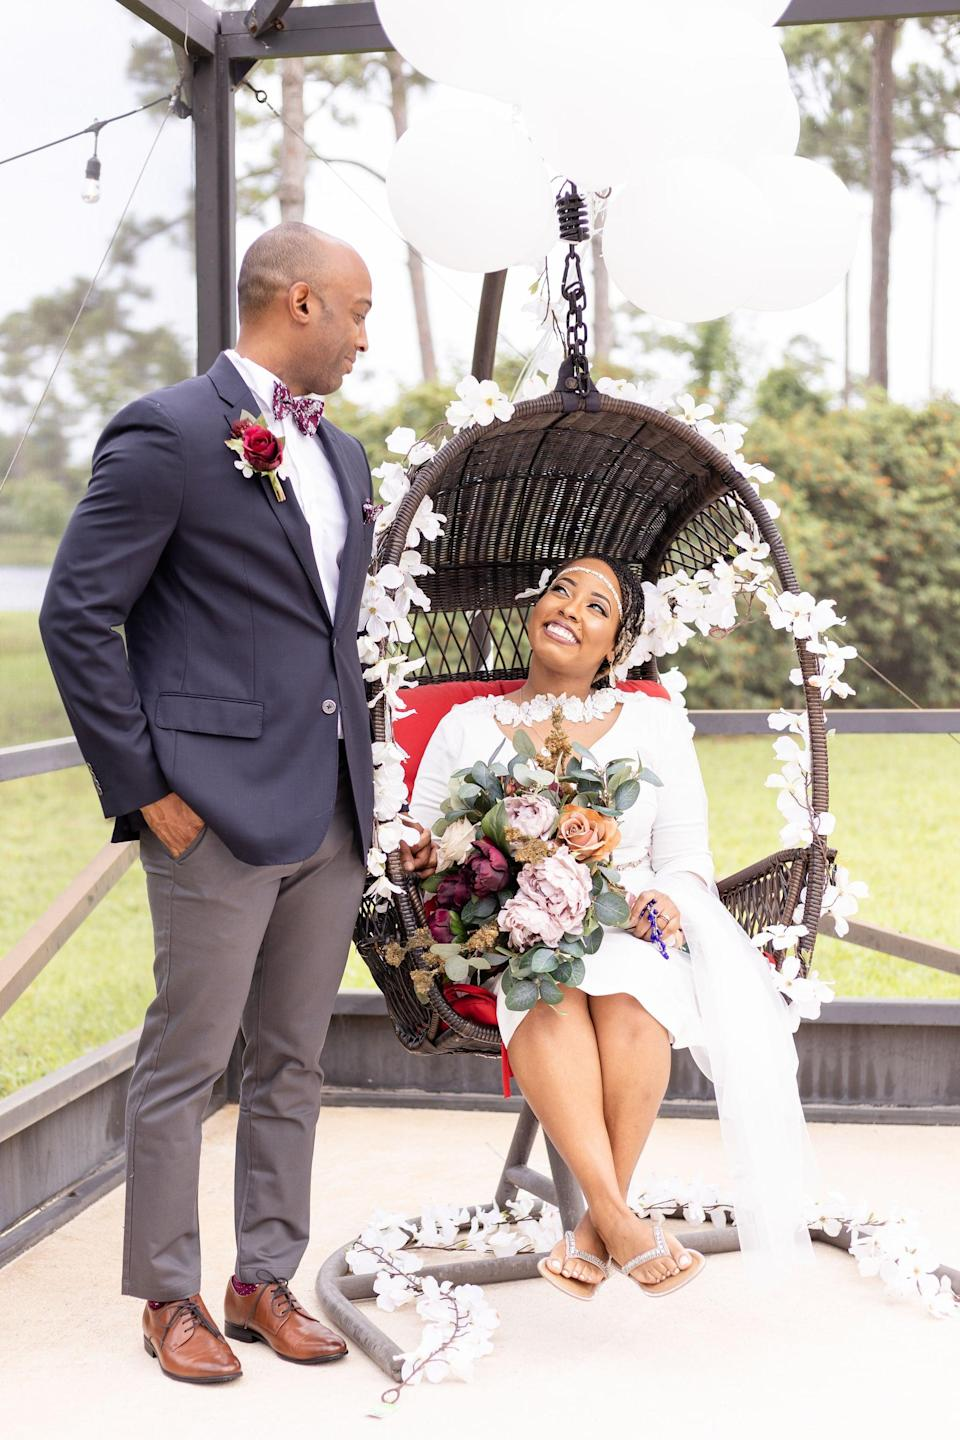 """<p>Upgrade any photo op by adding chic flower vines to the space. You can drape the vines on chairs, tables, the altar, and more. We suggest either matching them to your outfit (think white roses!) or the <a class=""""link rapid-noclick-resp"""" href=""""https://www.popsugar.co.uk/tag/Wedding"""" rel=""""nofollow noopener"""" target=""""_blank"""" data-ylk=""""slk:wedding"""">wedding</a>'s color scheme.</p>"""